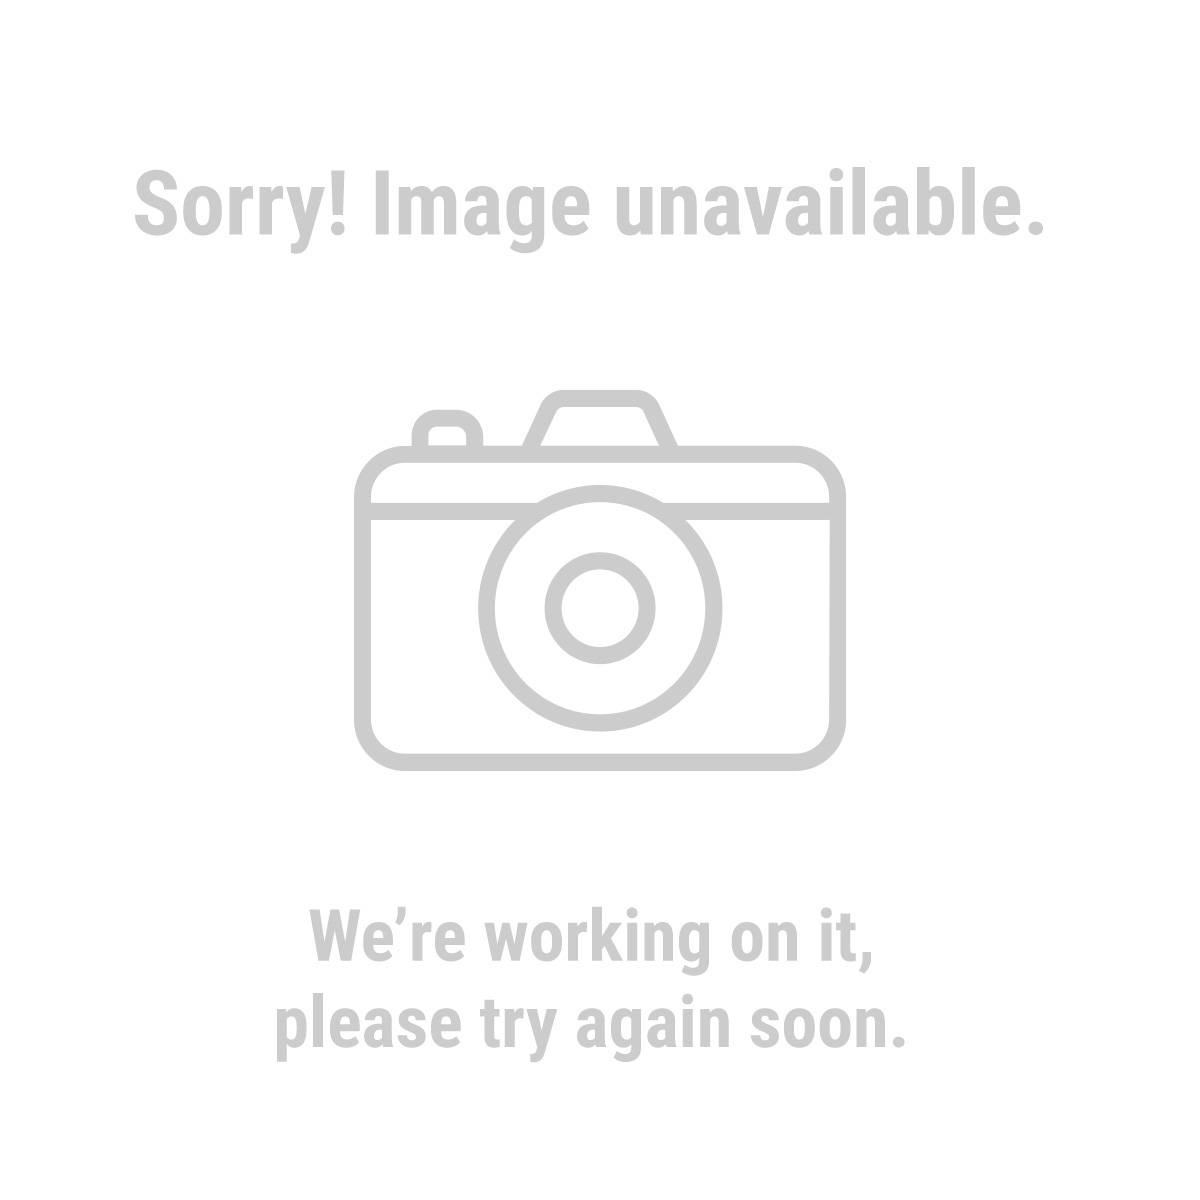 "Warrior 39675 4"" Grinding Wheel for Metal"